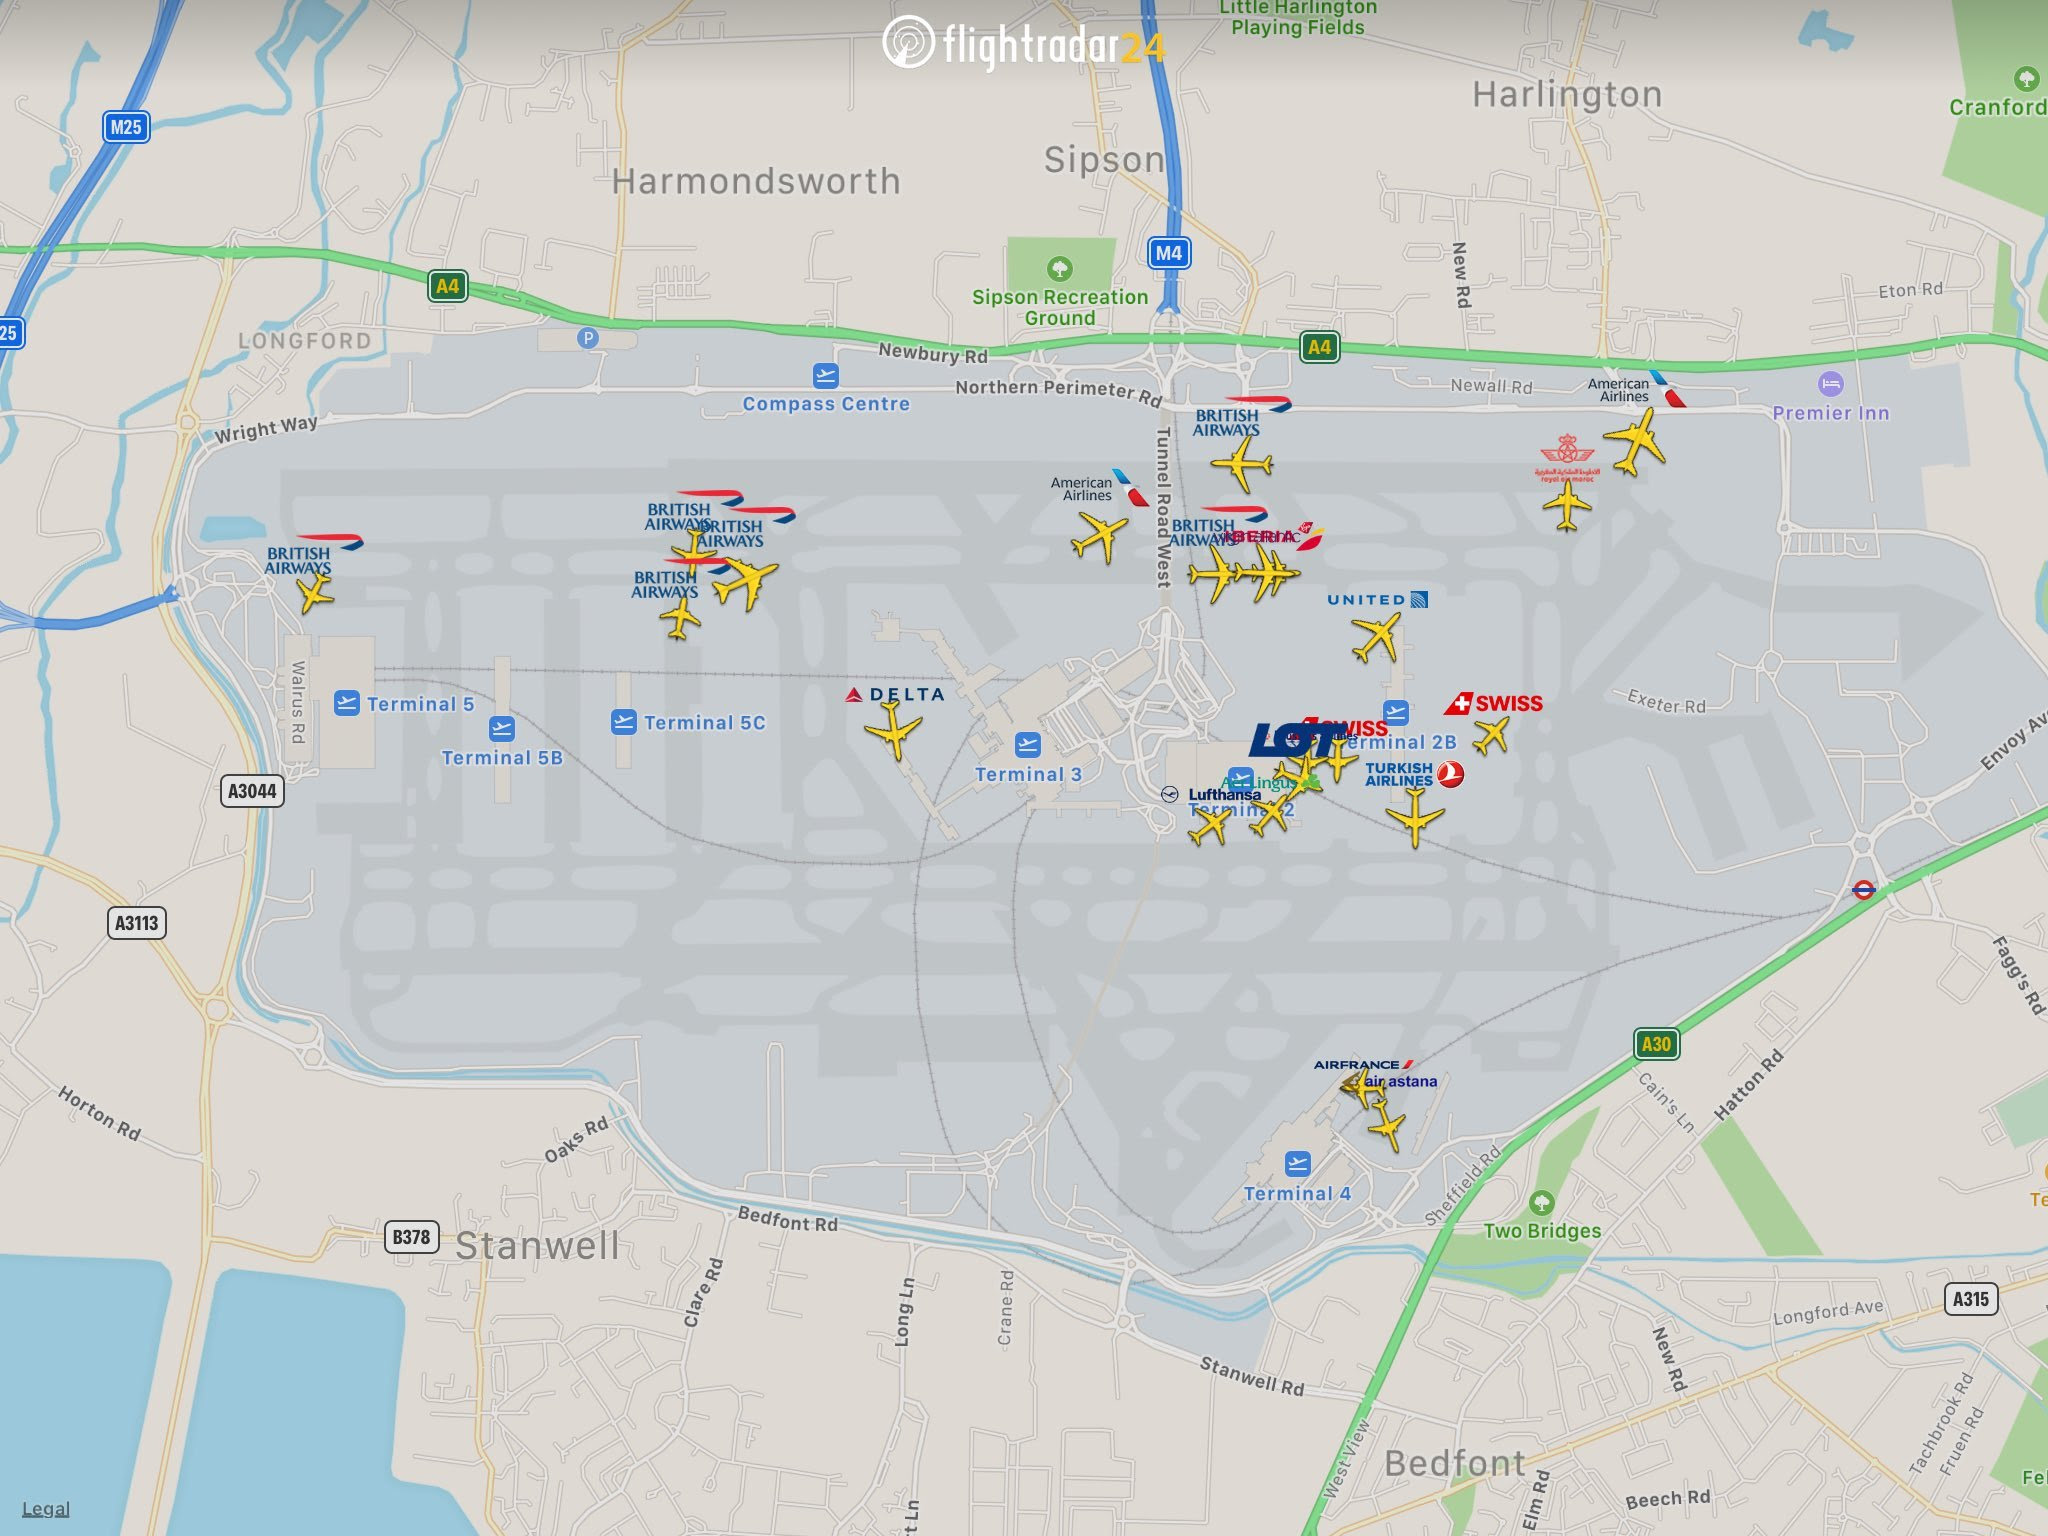 Flights wait to depart London Heathrow after a drone sighting halted departures